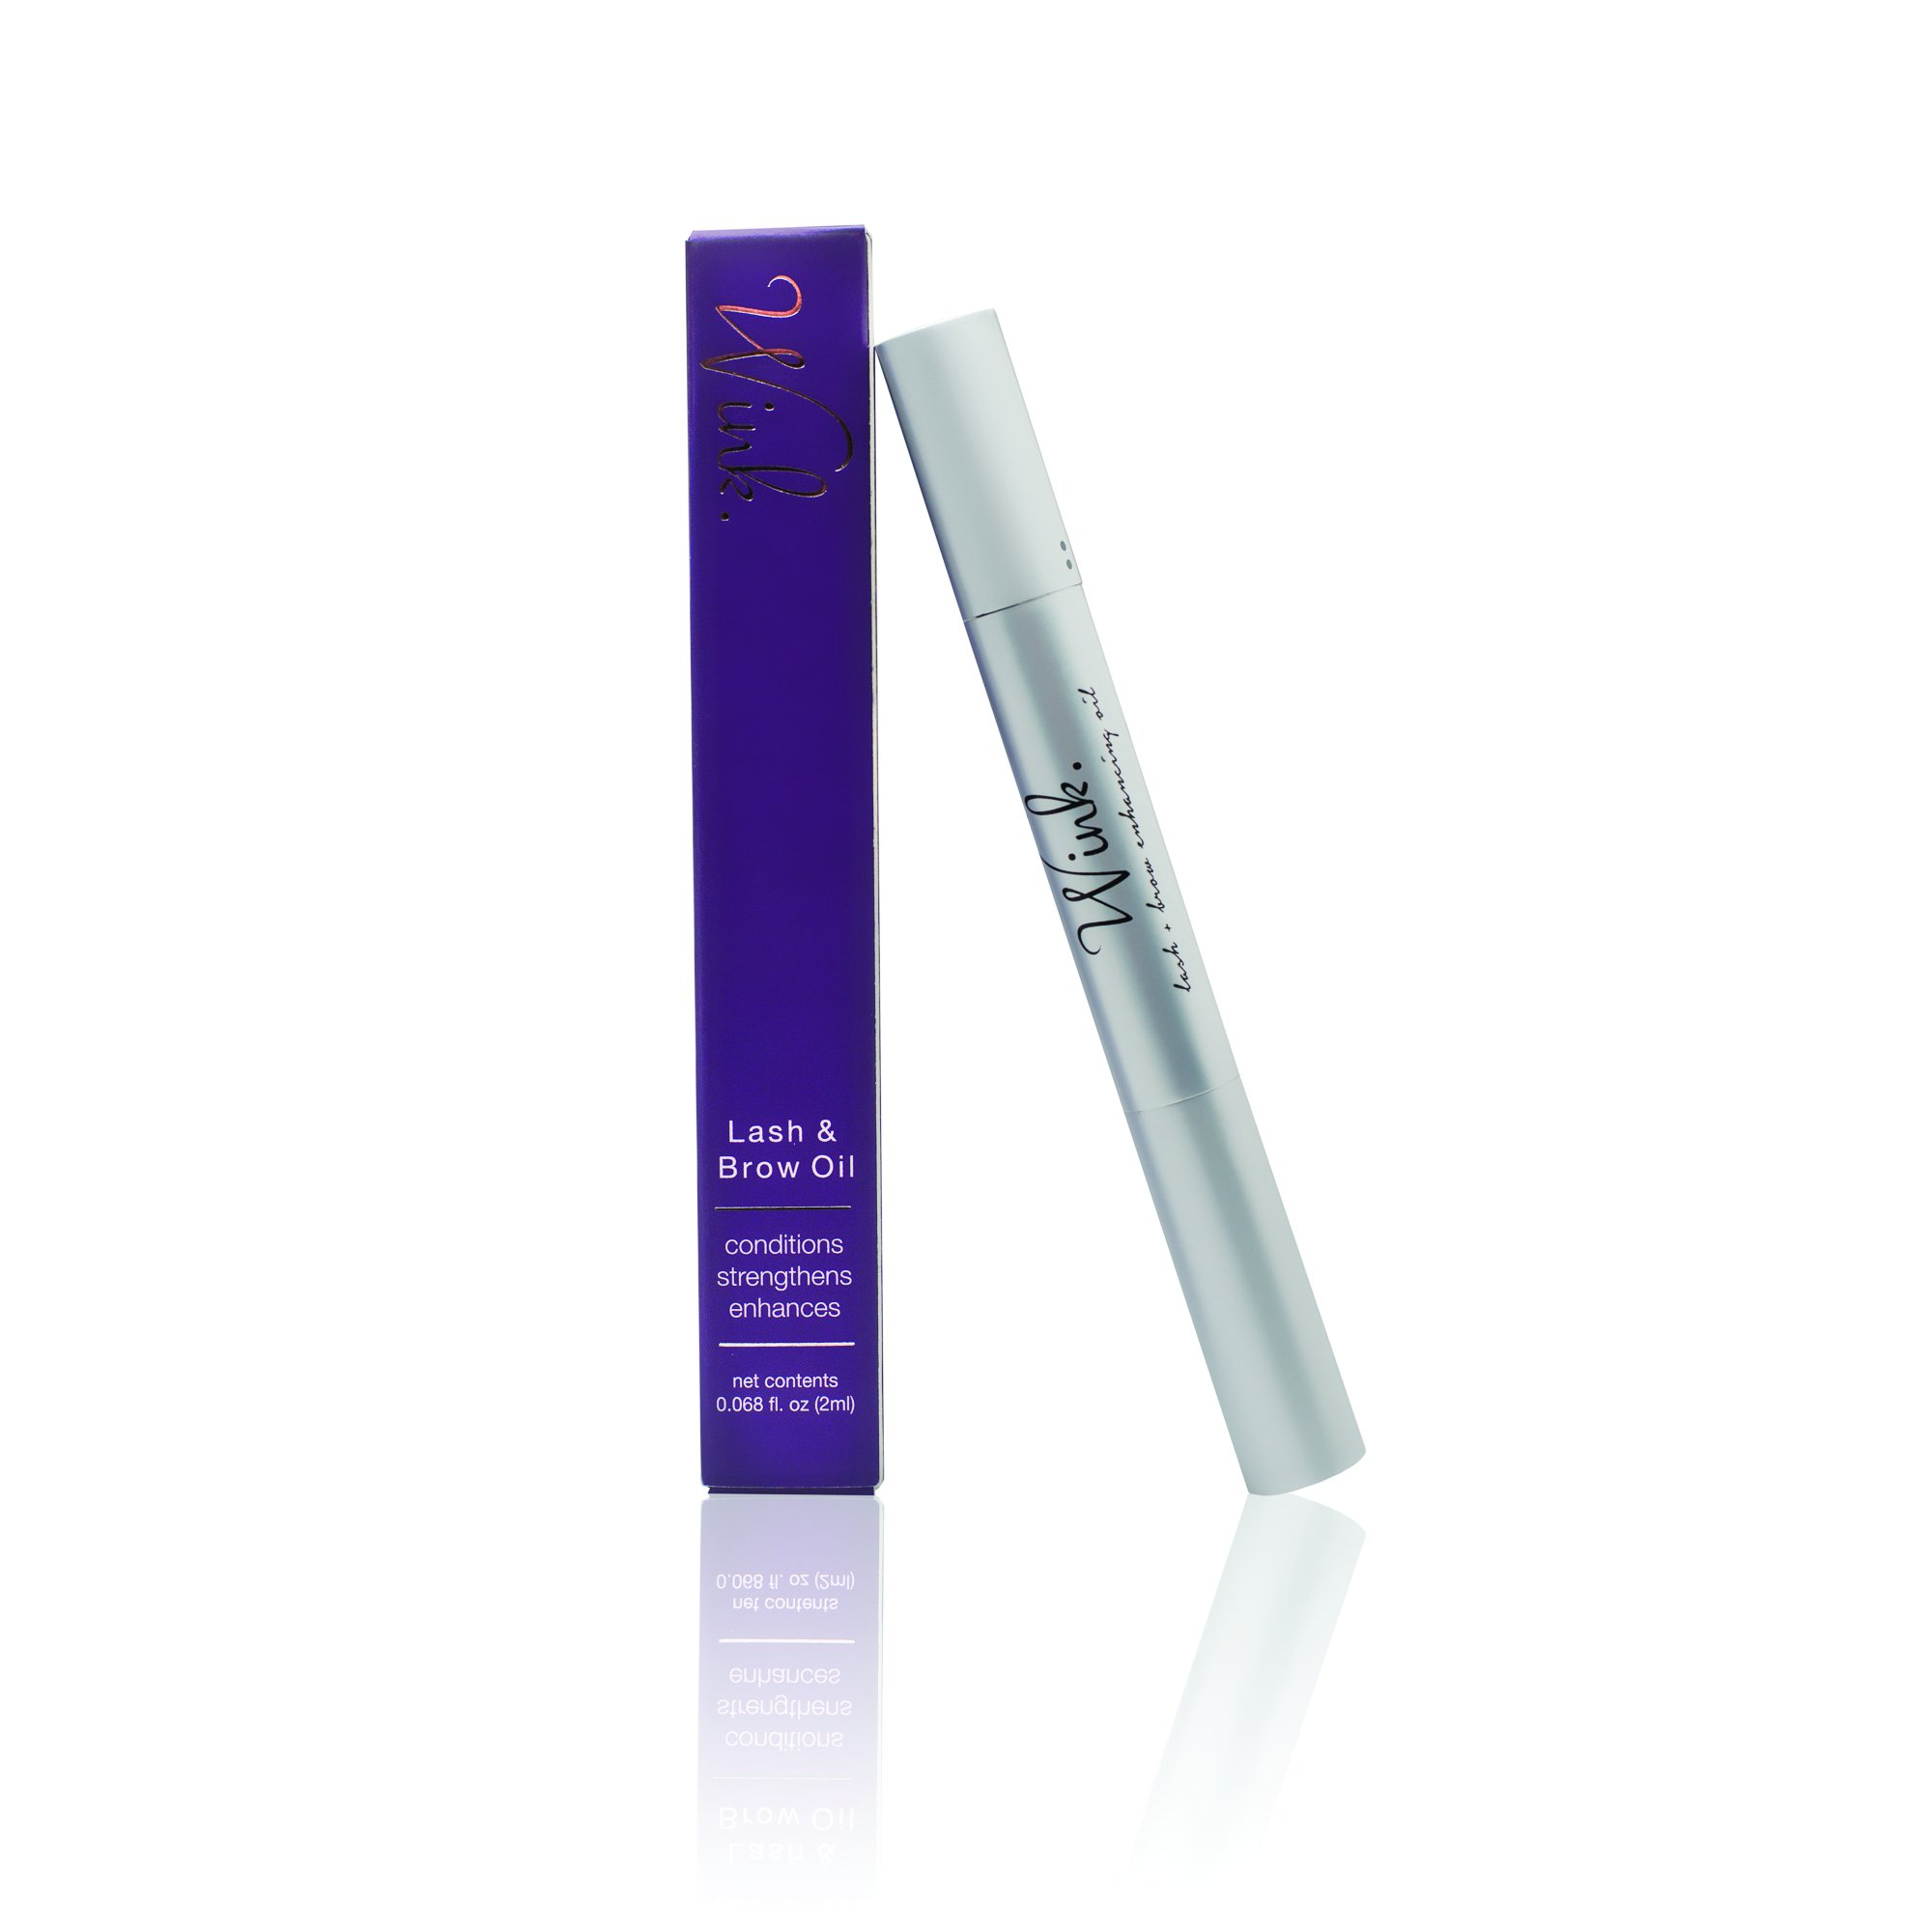 Amalie Wink Lash & Brow Enhancing Oil Vegan, Hypoallergenic, Cruelty-Free, Made In USA